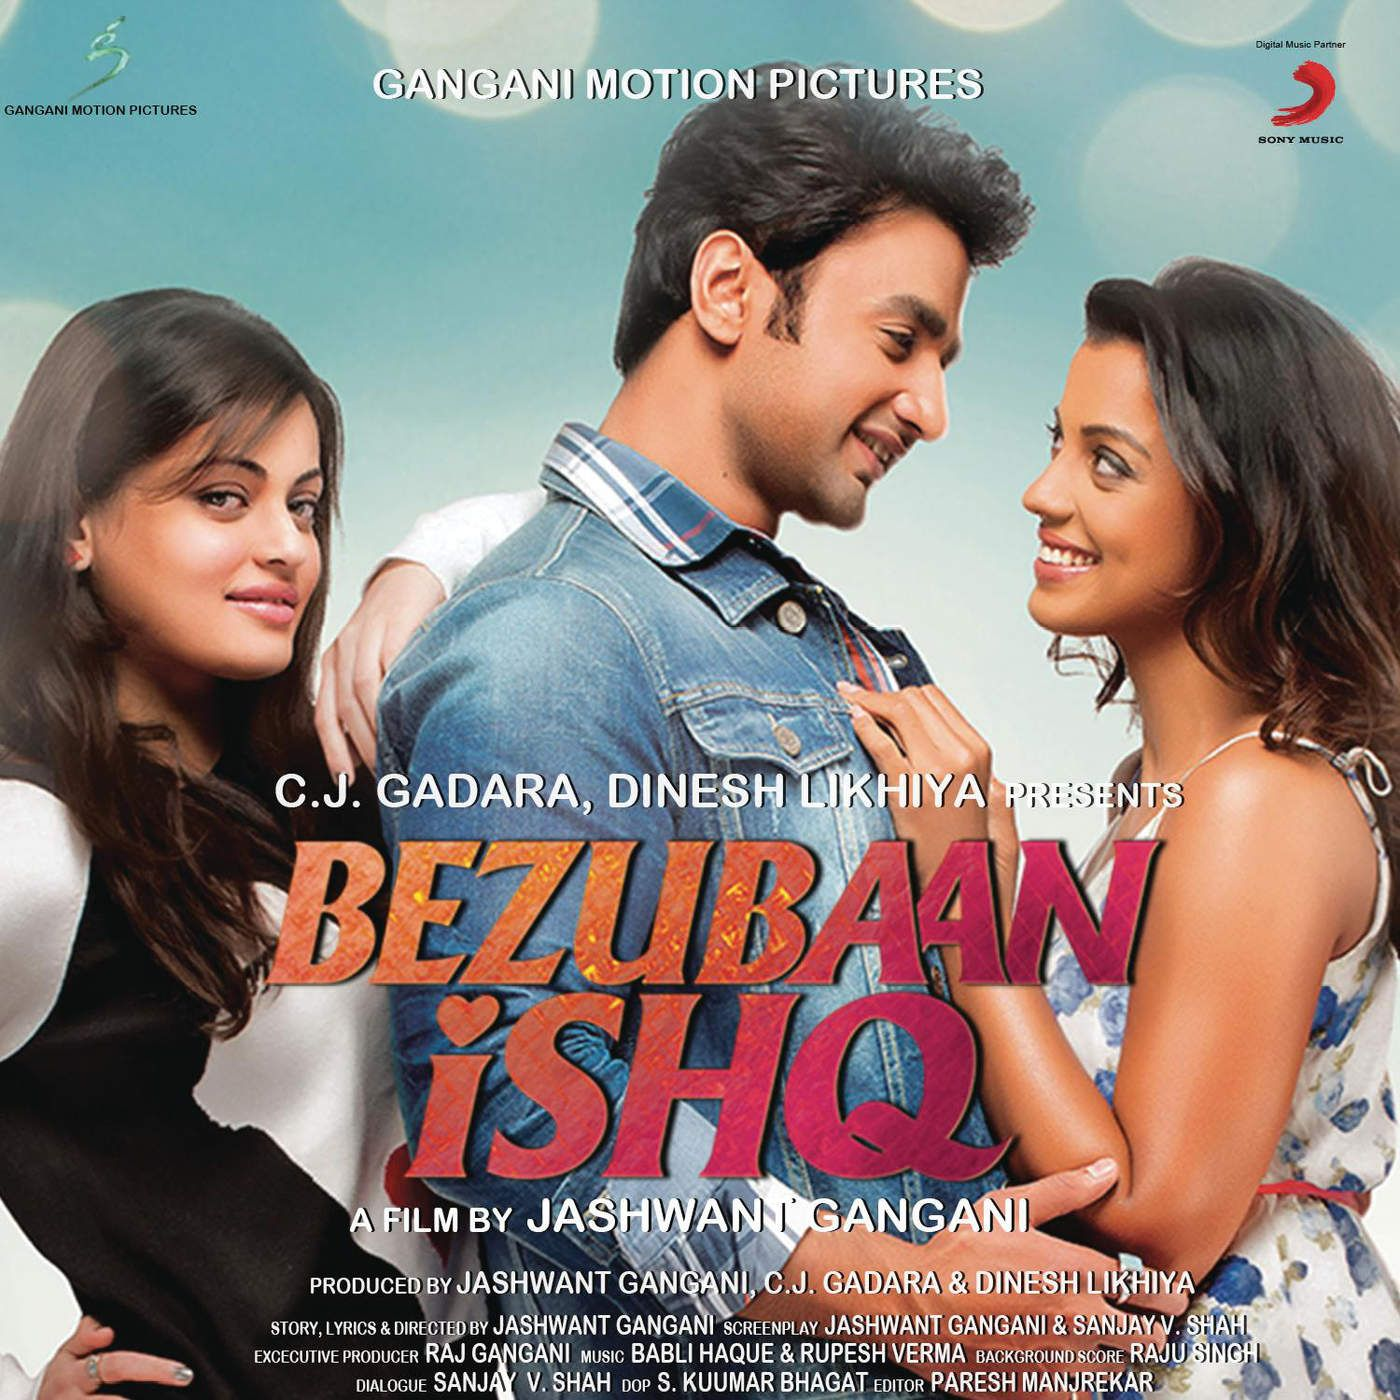 Bezubaan Ishq Poster Out Now Free Movies Bollywood Movie Songs Hd Movies